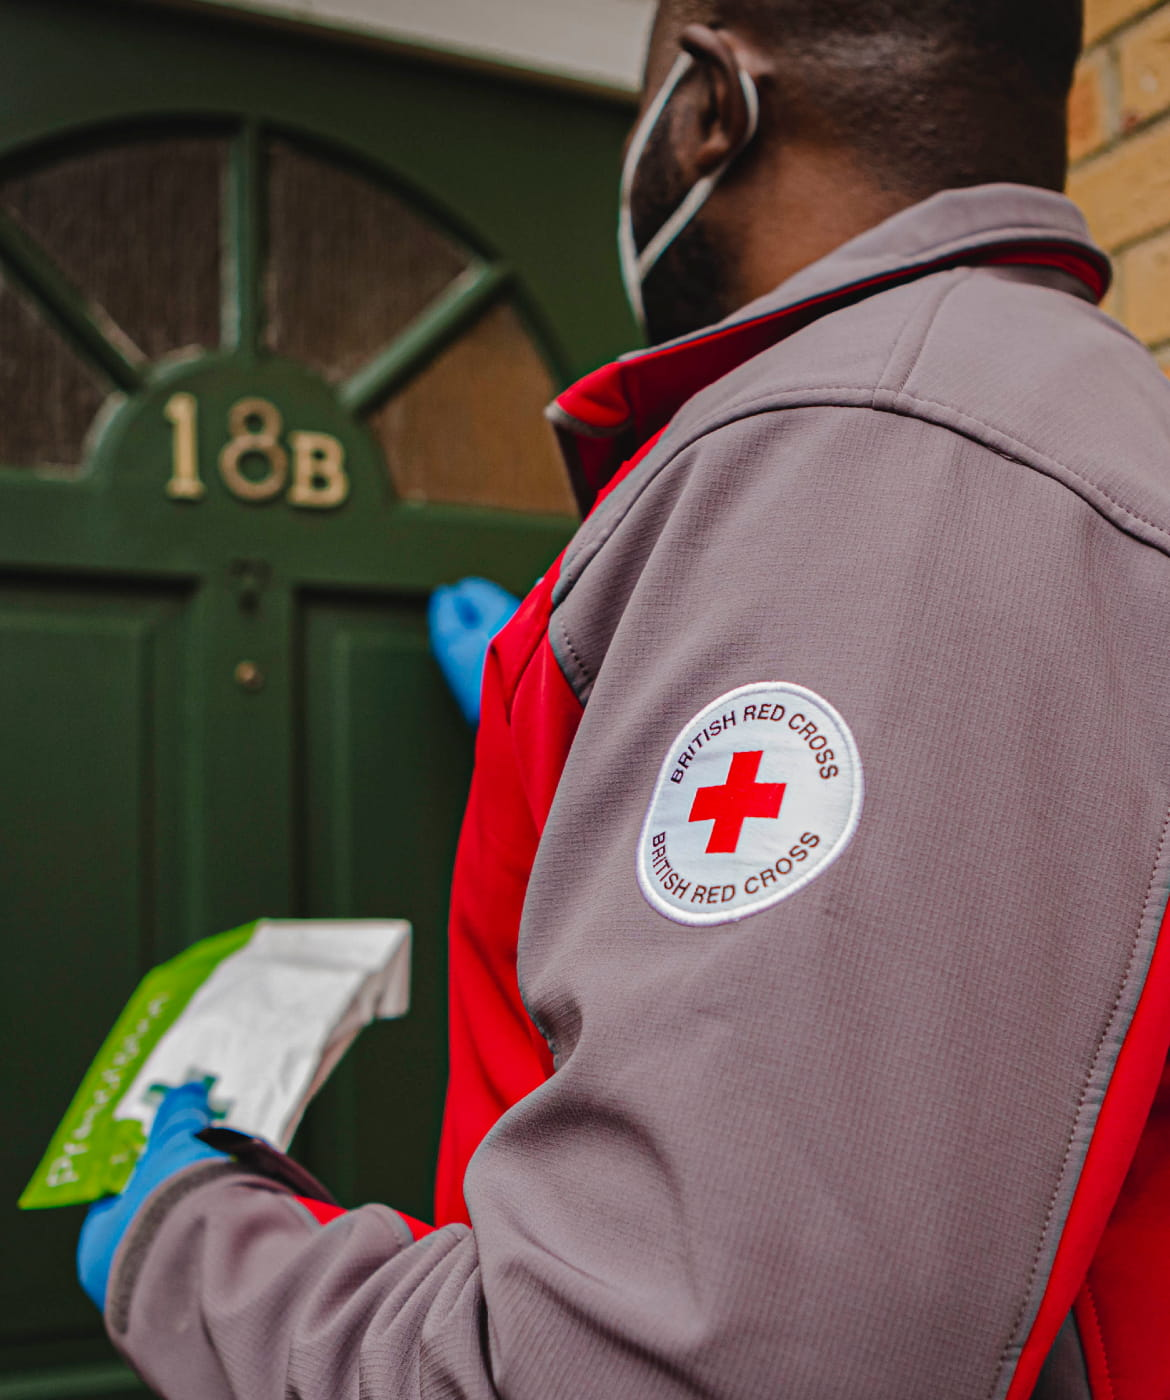 Emergency Response volunteer, Emmanuel, knocking on the door to deliver a prescription